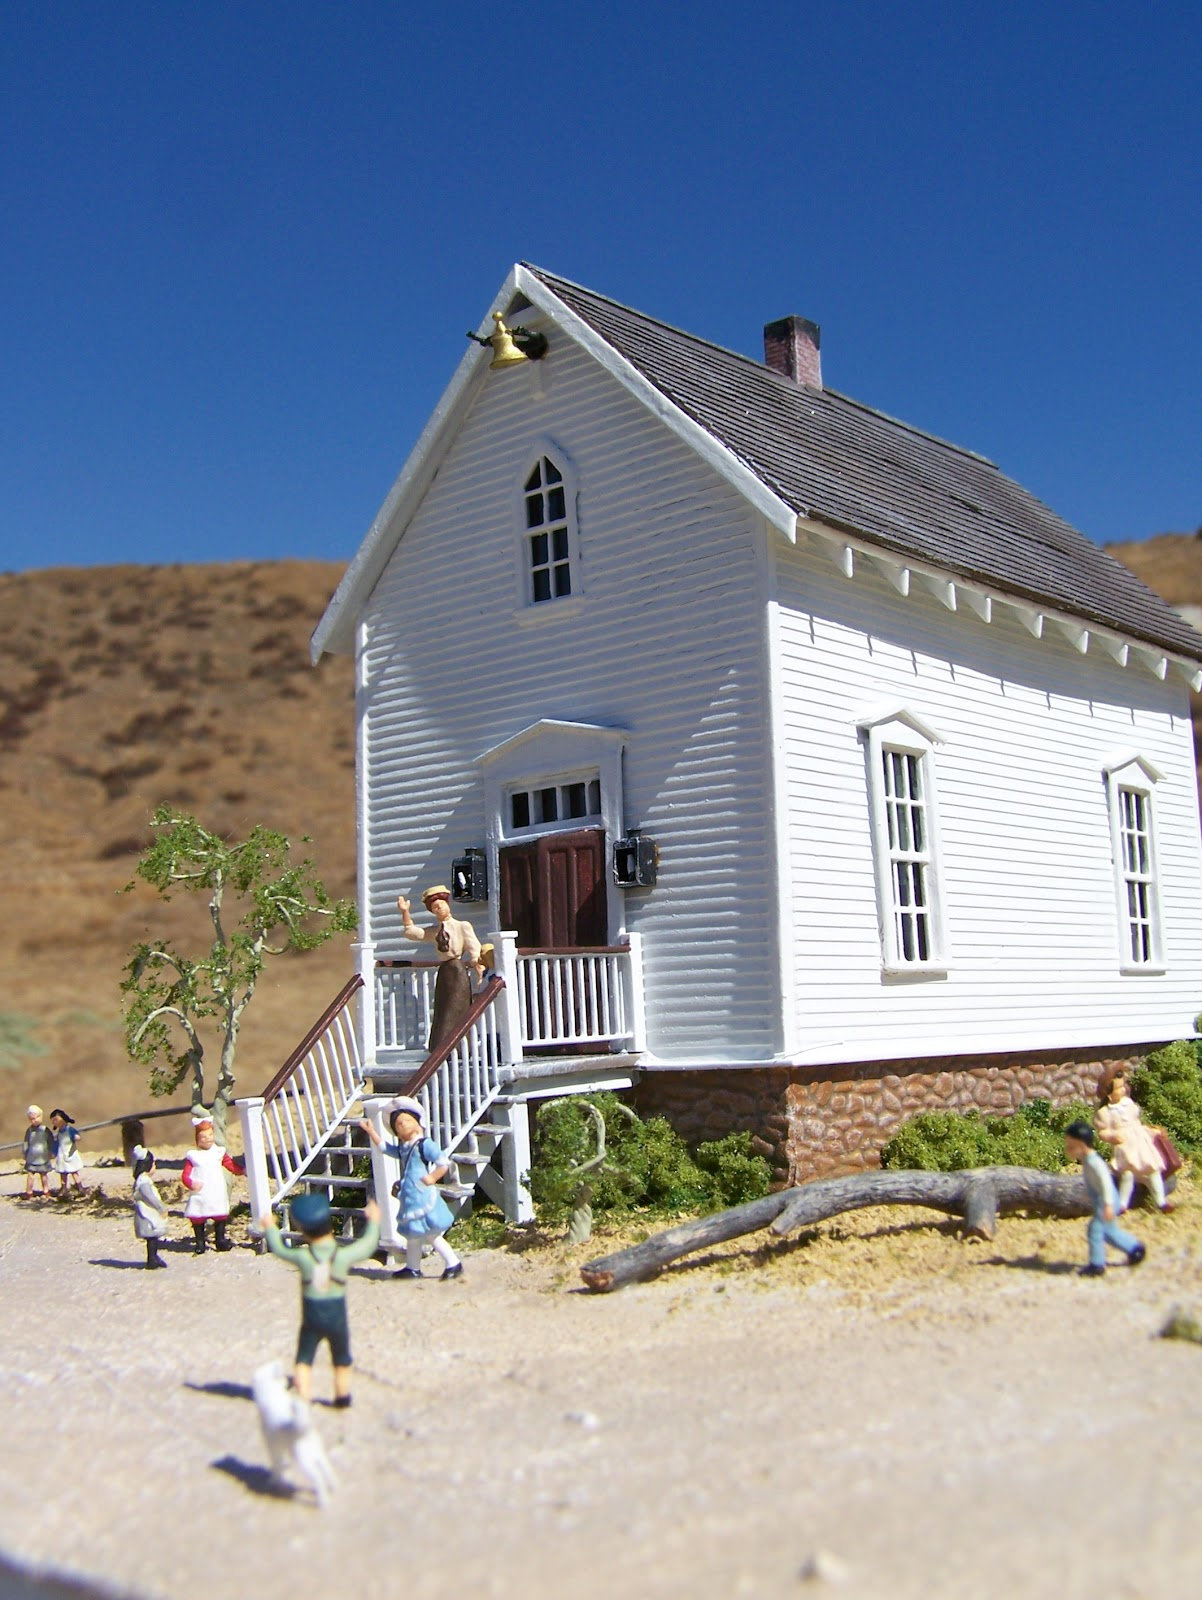 Mike cozart design and model walnut grove school house for The grove house